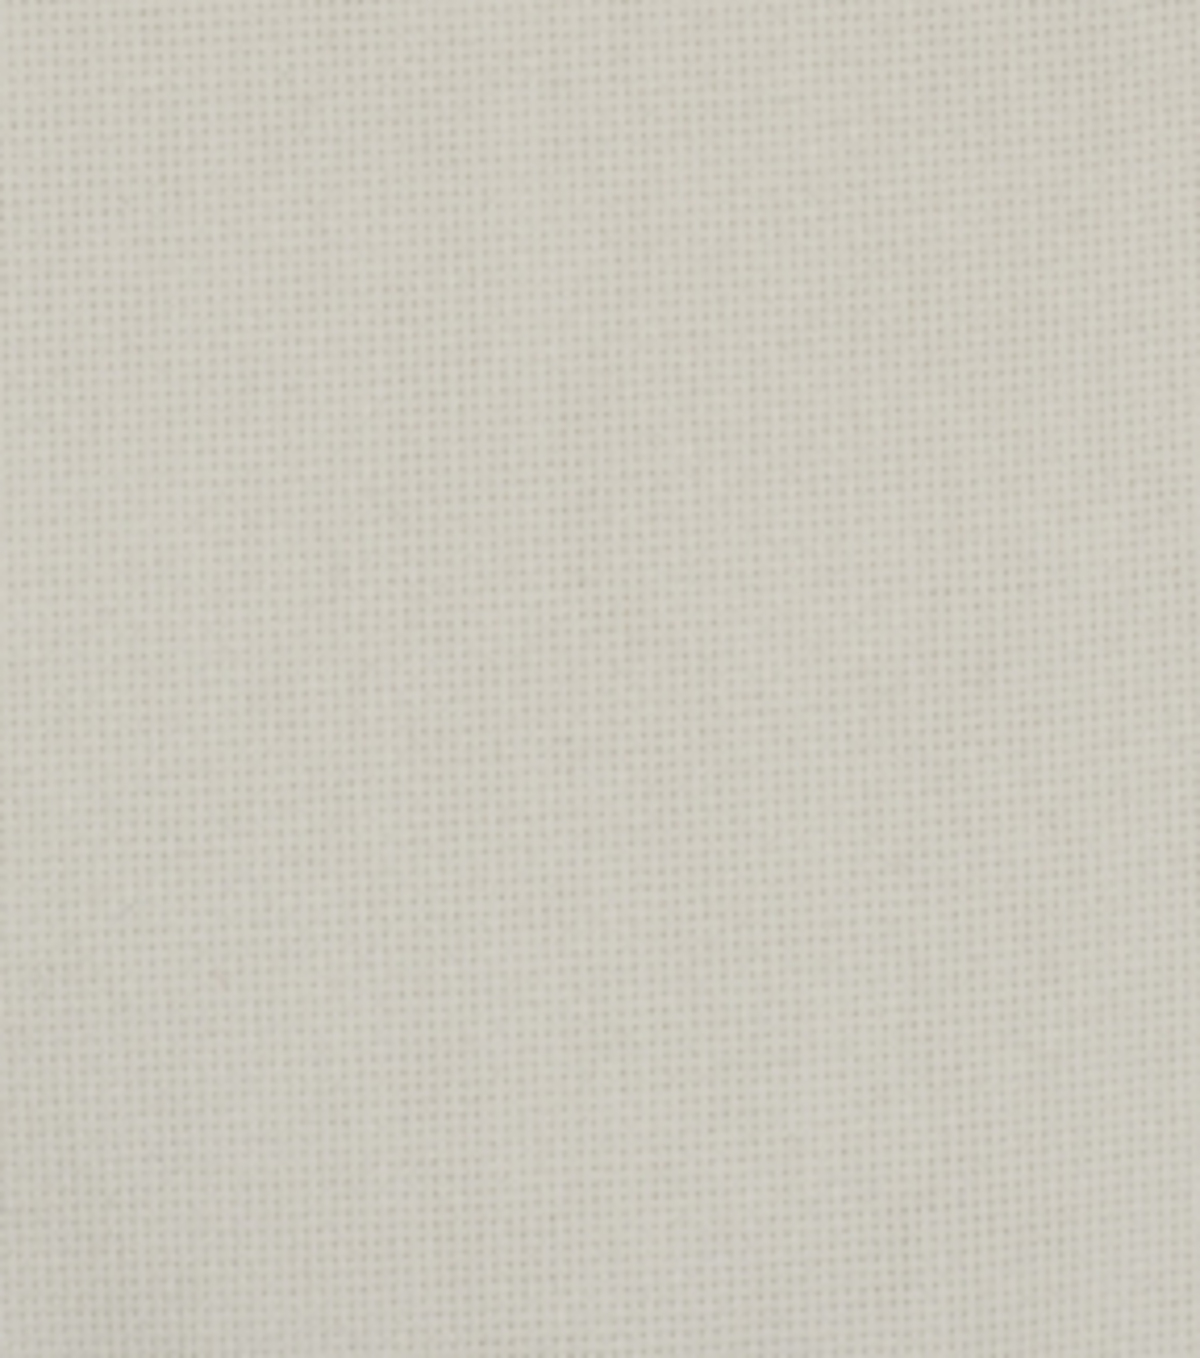 Home Decor 8\u0022x8\u0022 Fabric Swatch-Eaton Square Pitta Eggshell